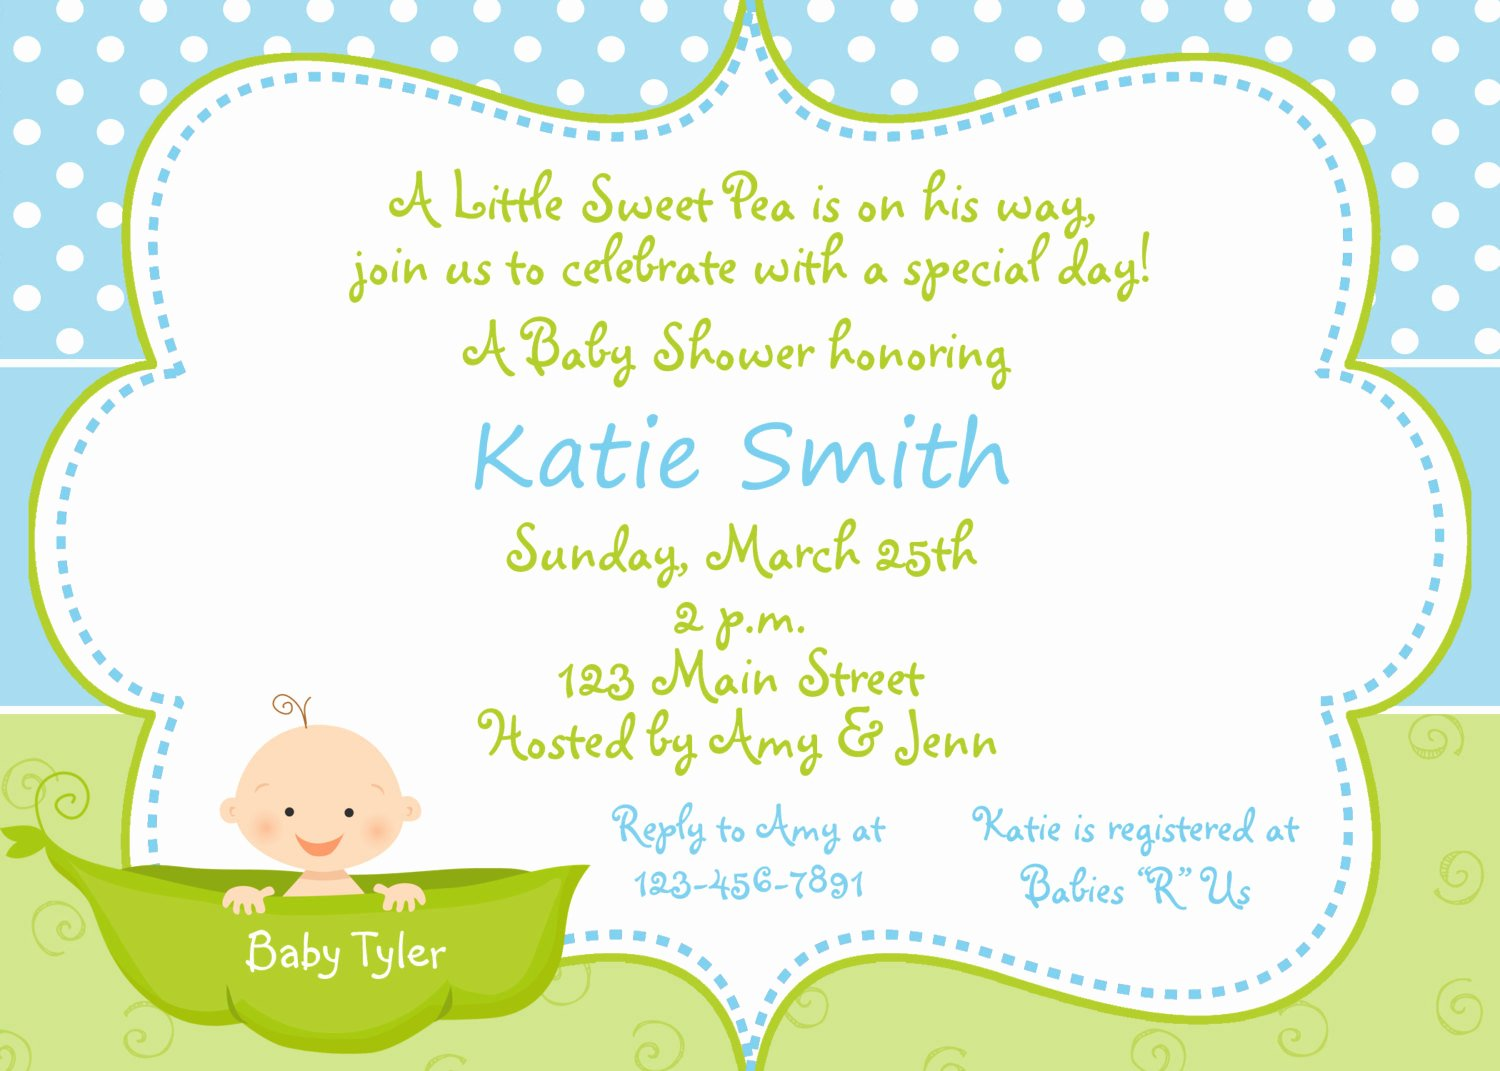 Baby Shower Invitations for Boy & Girls Baby Shower